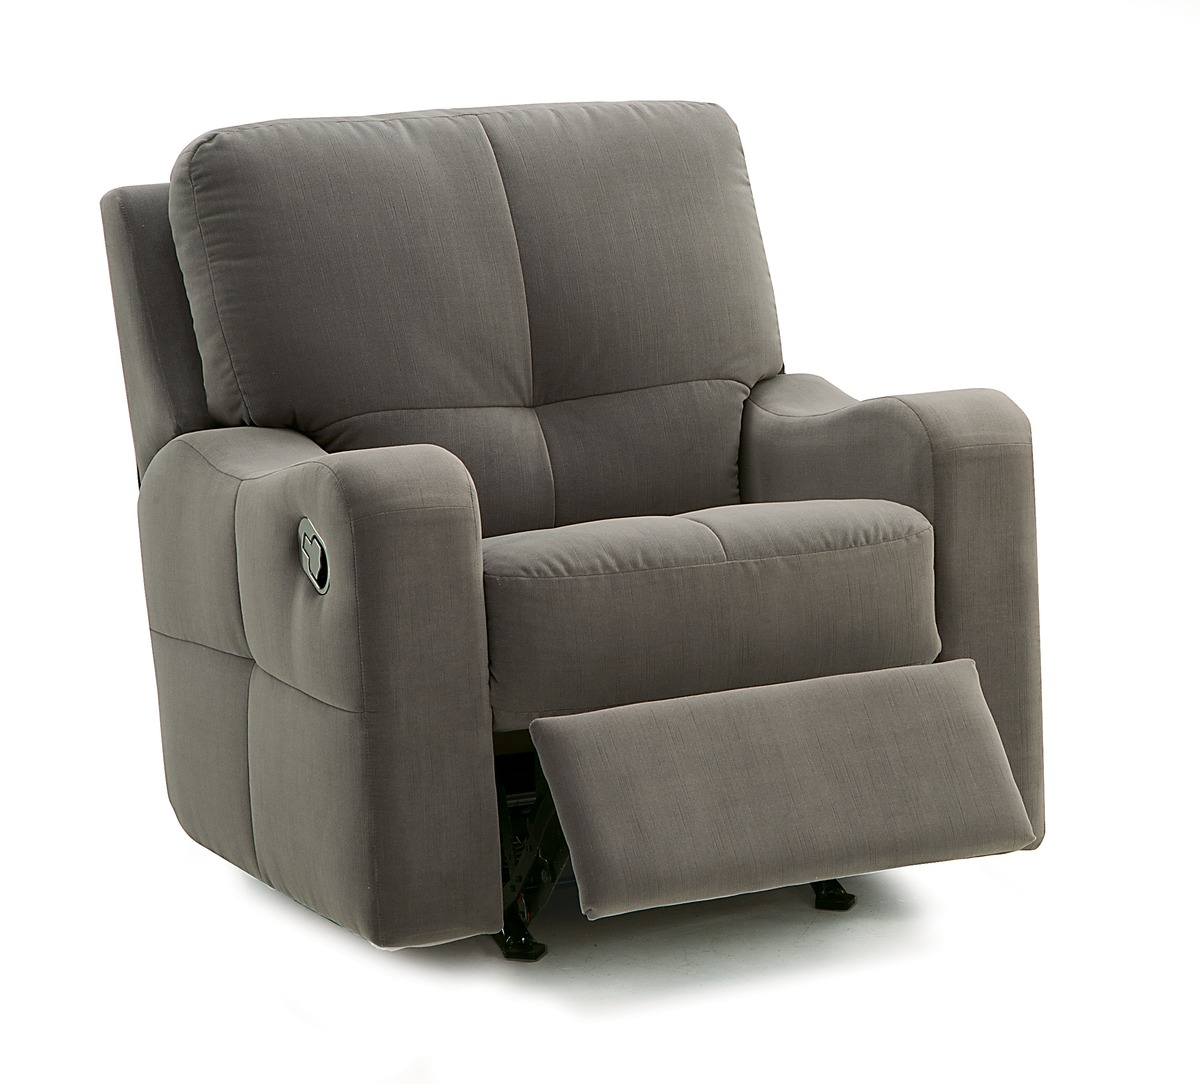 swivel chair national bookstore camping chairs with table palliser arm recliner